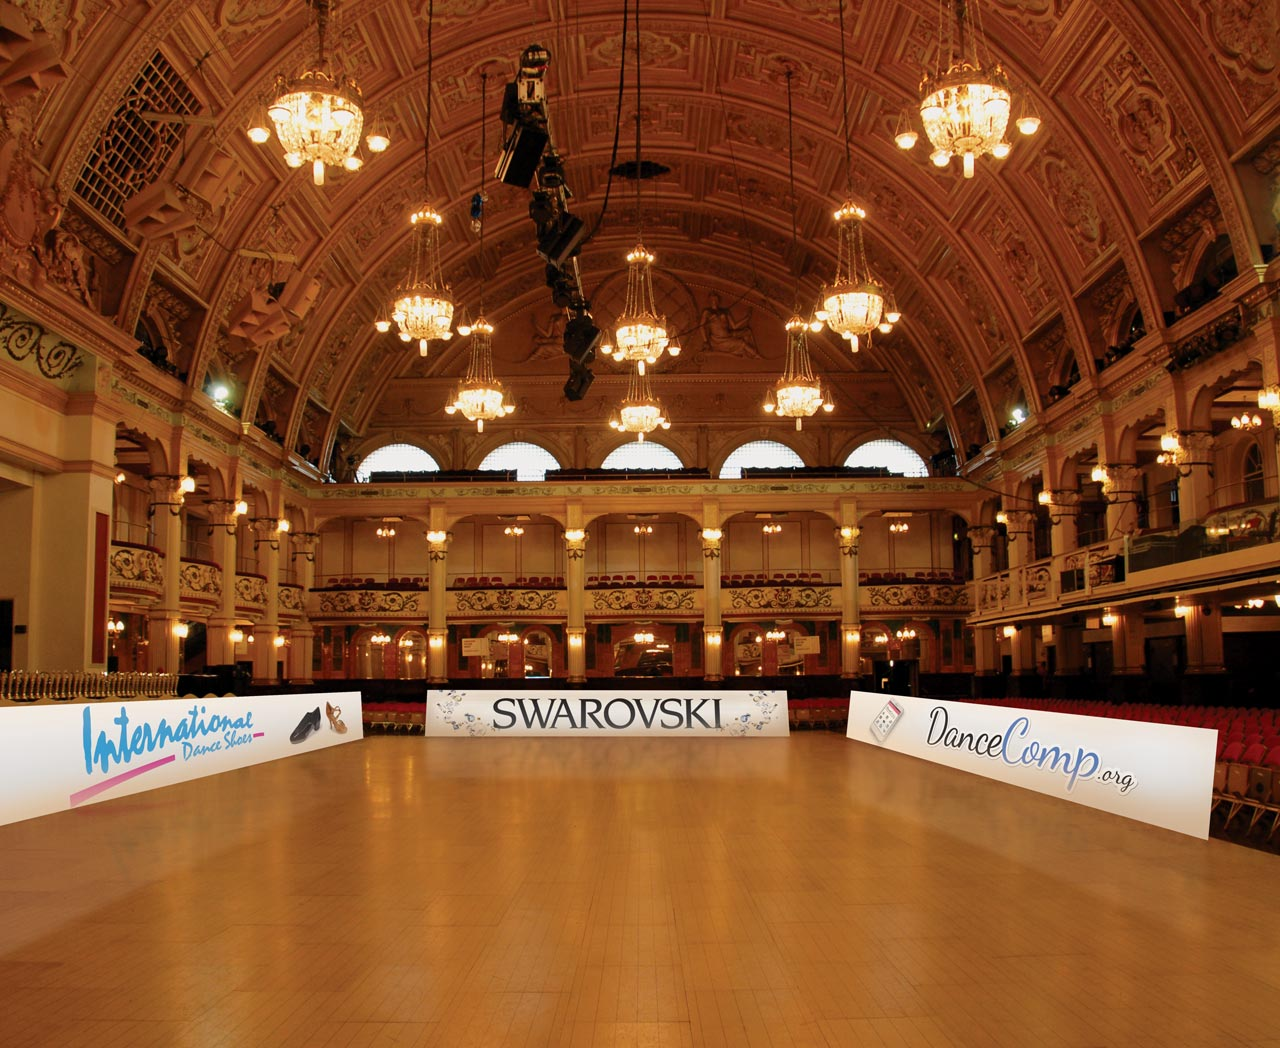 DanceComp is at Blackpool